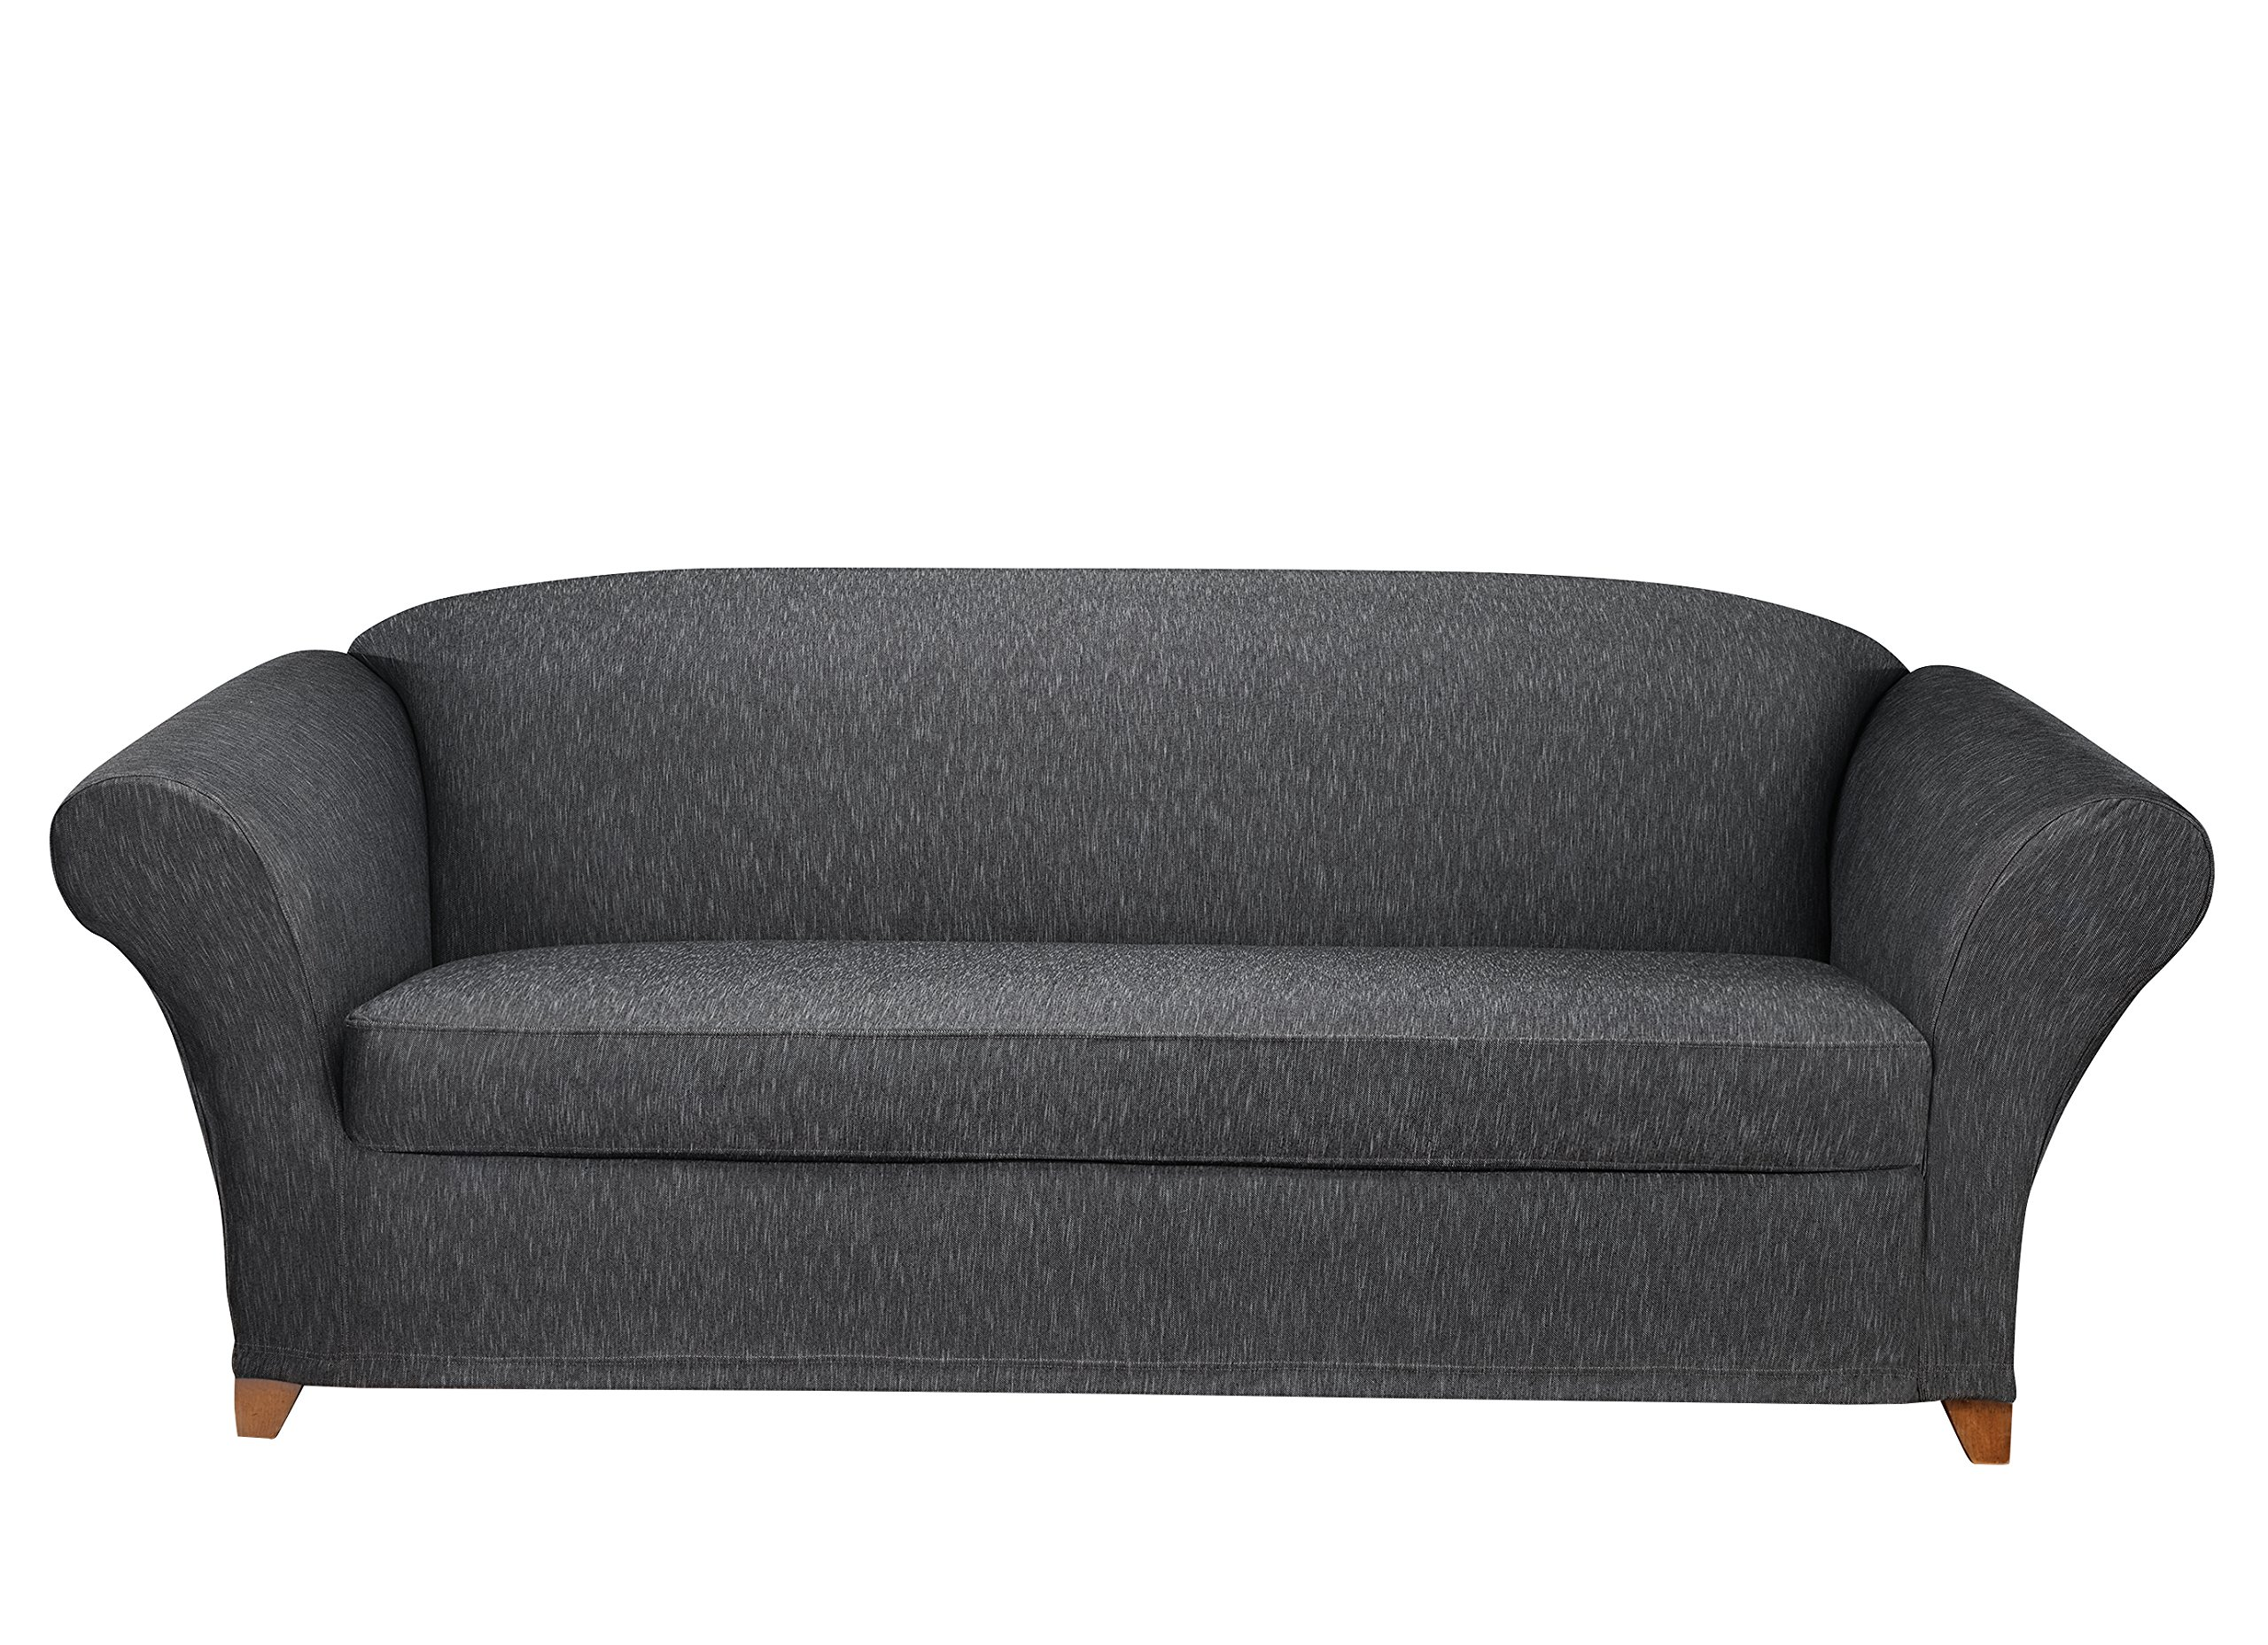 Sure Fit Stretch Denim Separate Seat Sofa Slipcover - Black